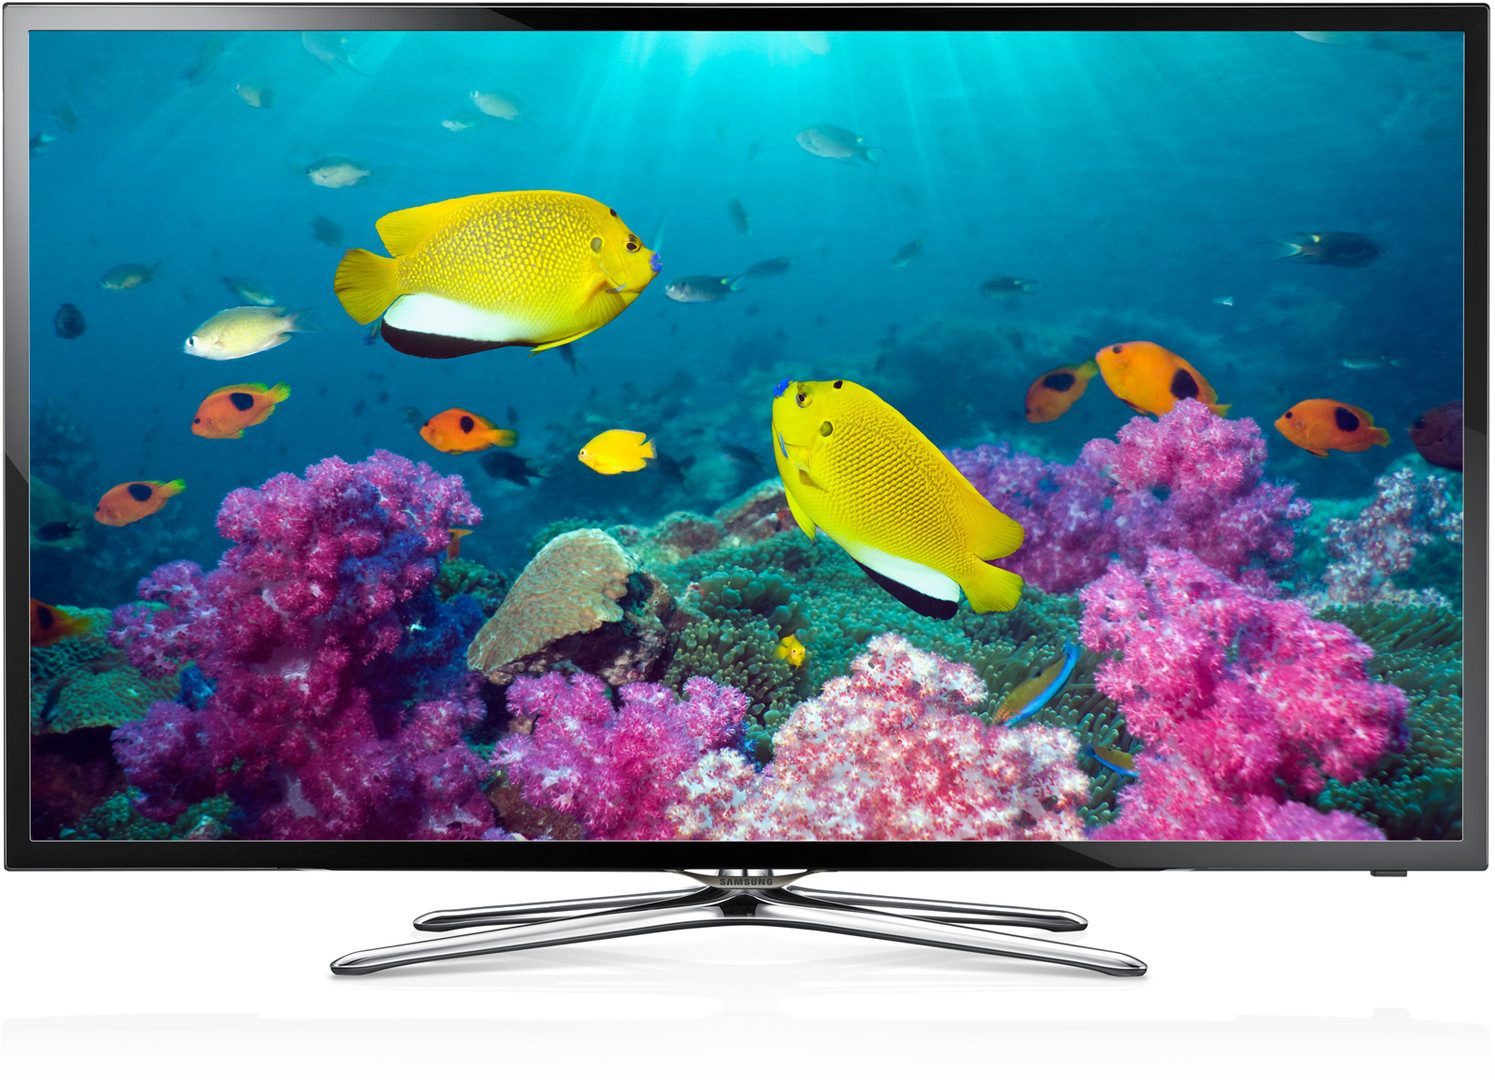 Tv Led 32 Samsung Ue32f5700 Tdt-hd Smartt